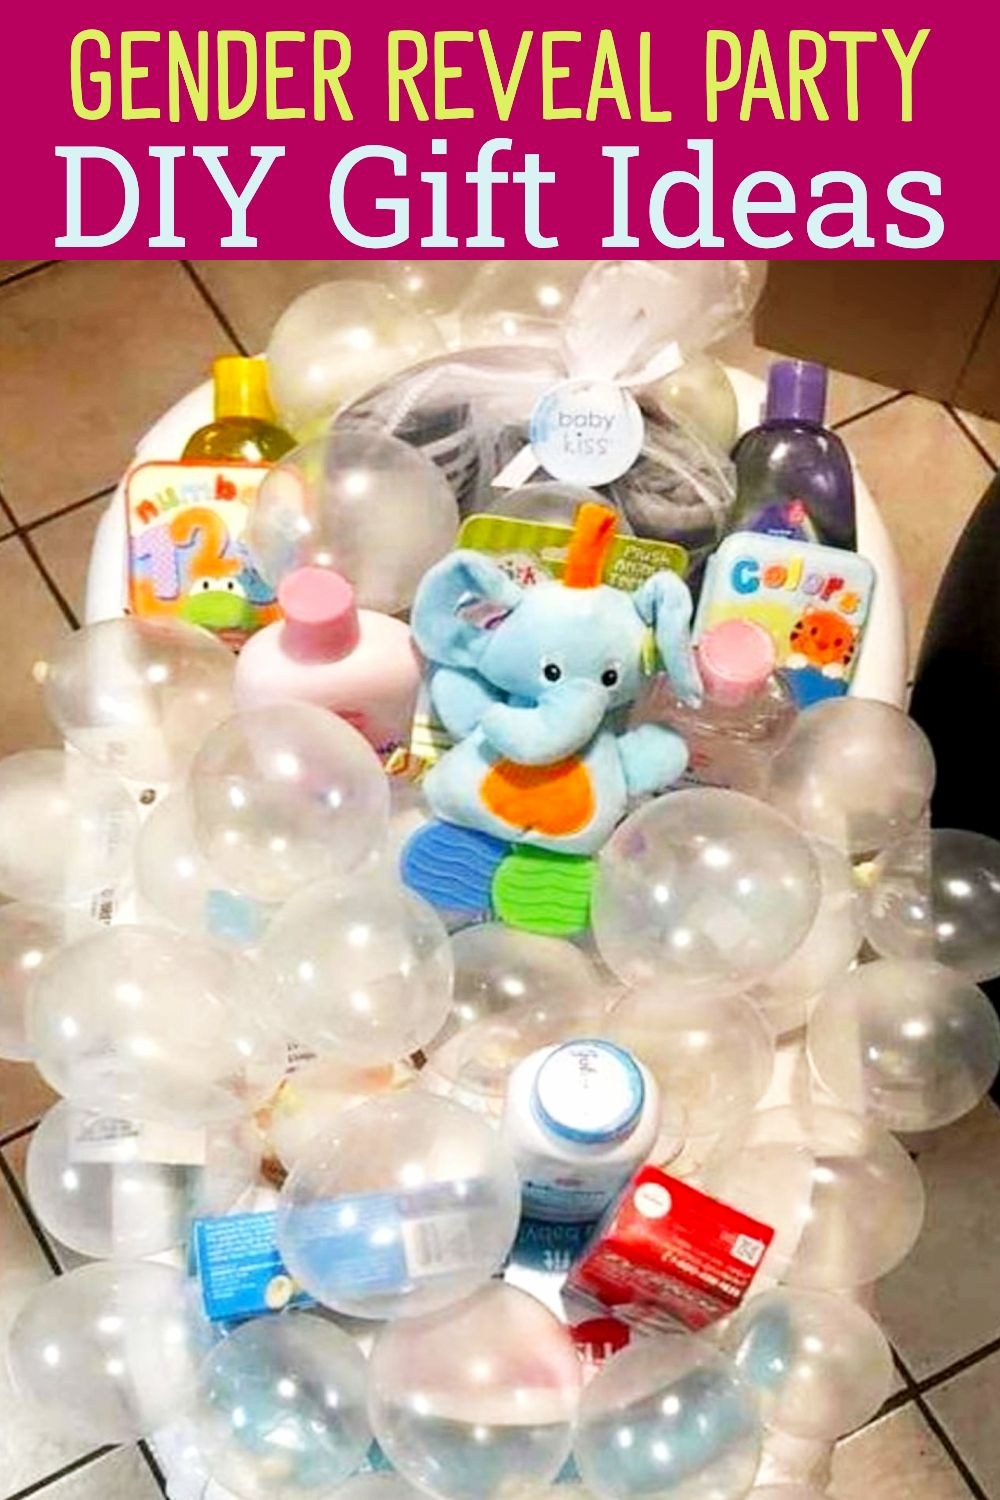 28 Affordable Cheap Baby Shower Gift Ideas For Those On A Budget 2021 Guide Baby Reveal Party Gifts Gender Reveal Party Gifts Reveal Party Gifts